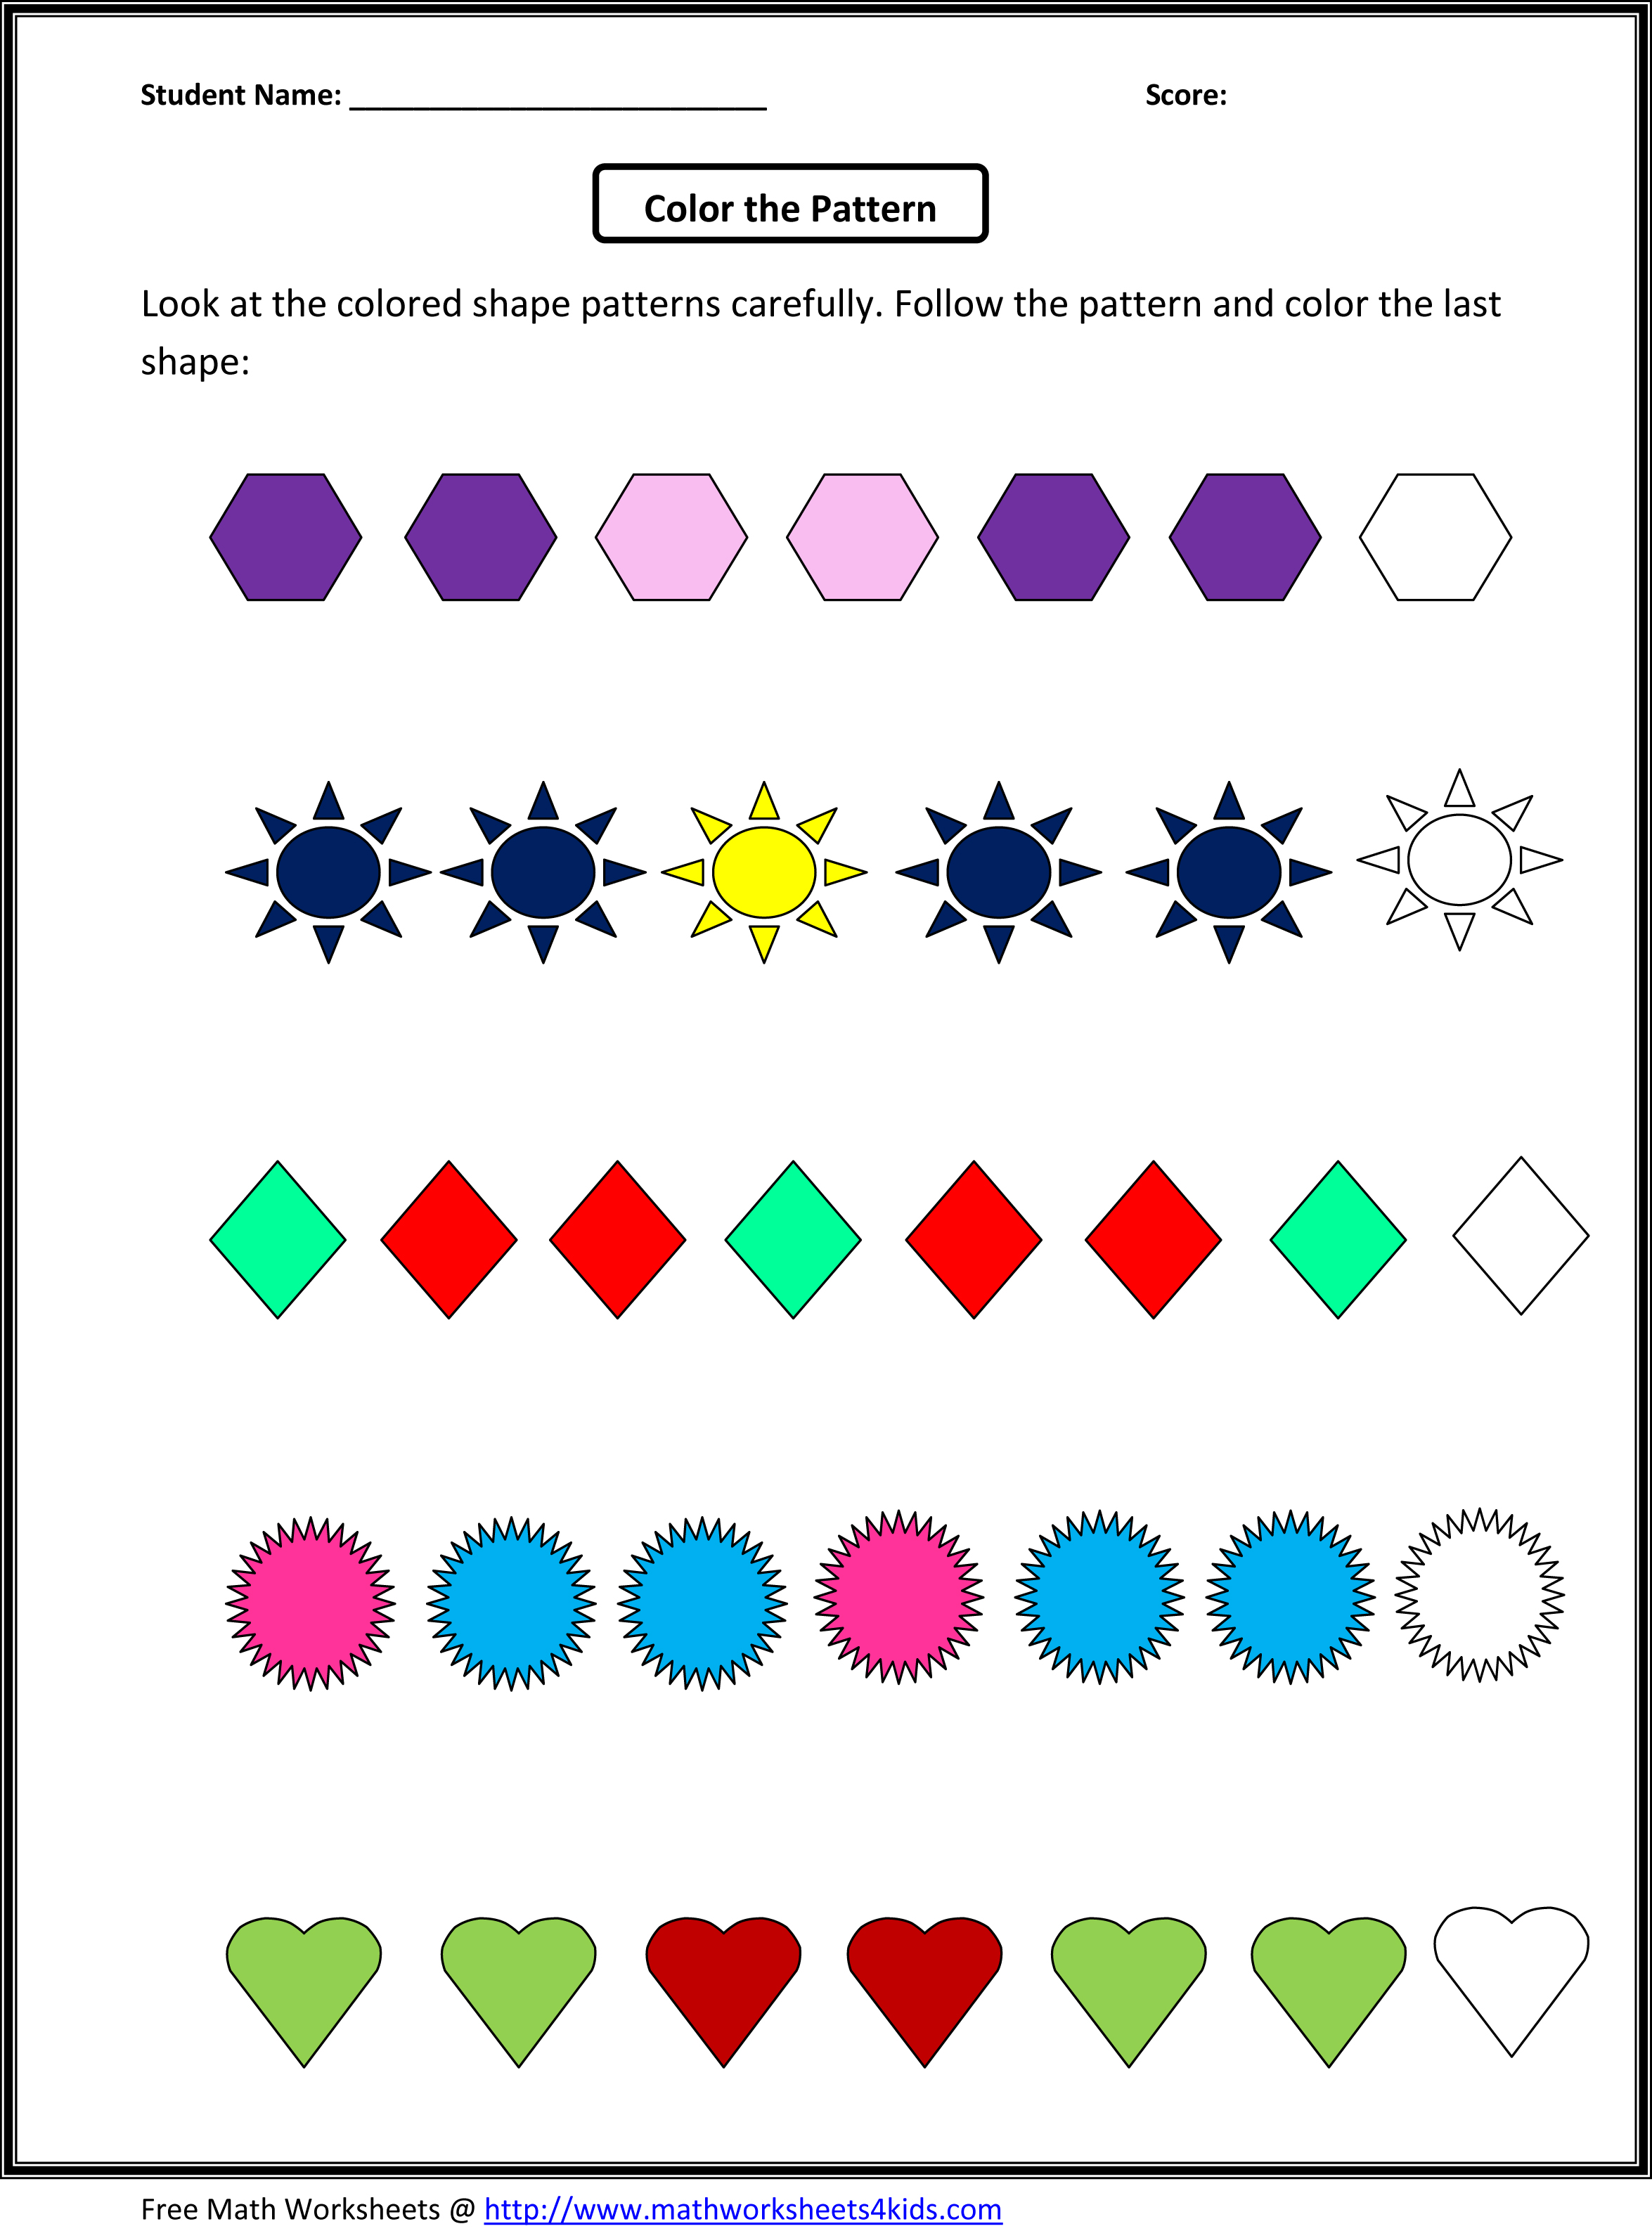 Worksheet Grade 5 Math Patterns Worksheets math patterns worksheets click here for your free download go to top place value 2nd grade based on